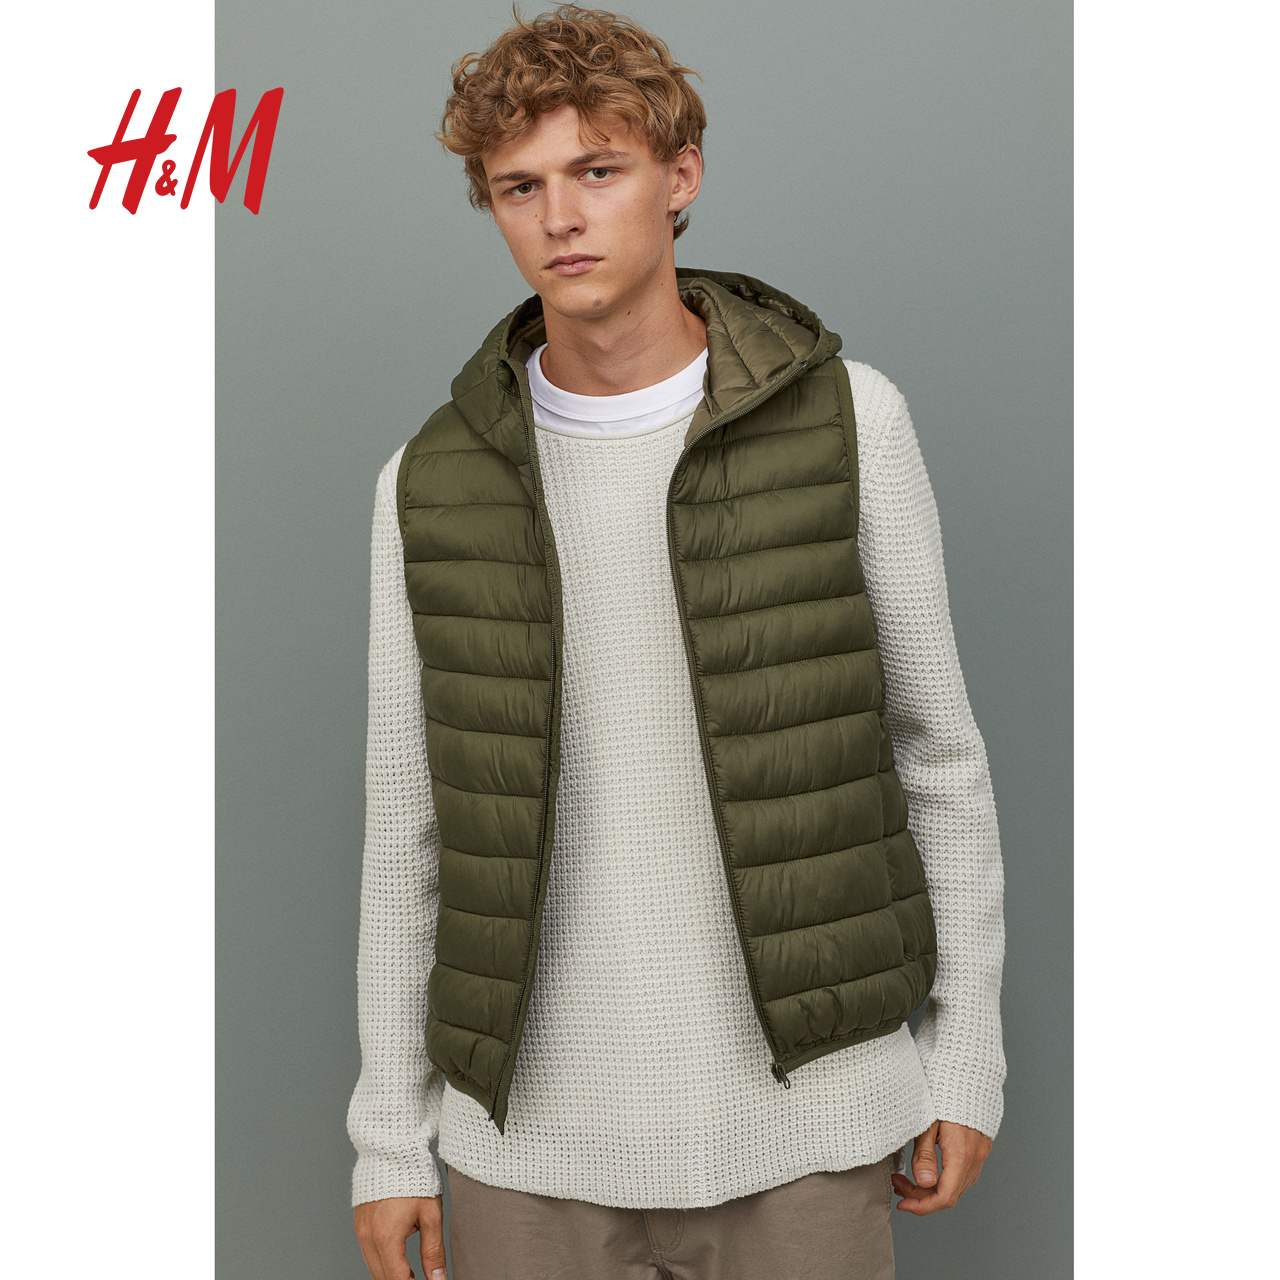 HM divided men's autumn and winter 2019 light cotton jacket vest 0783573